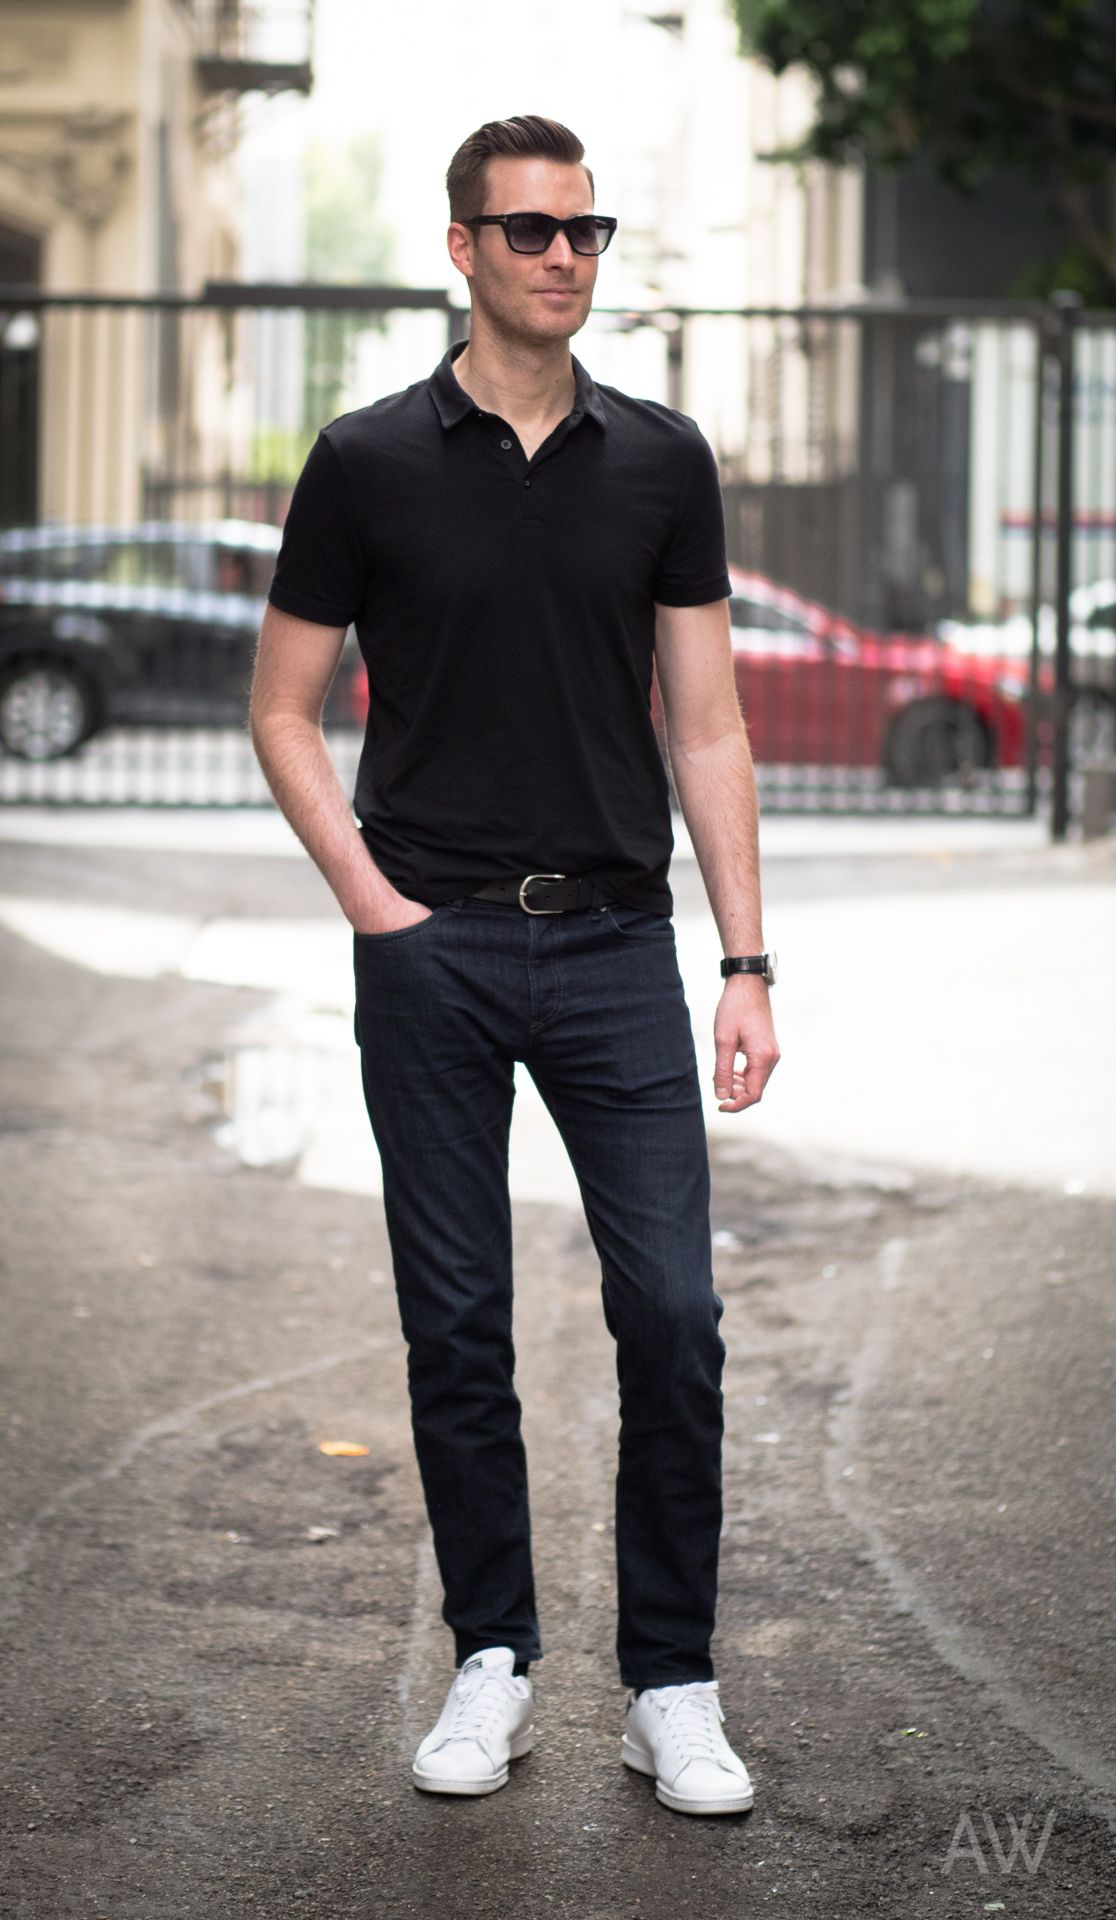 540a7787 3-Outfits-Every-Guy-Should-Own-Ashley-Weston-1 | new me in 2019 ...